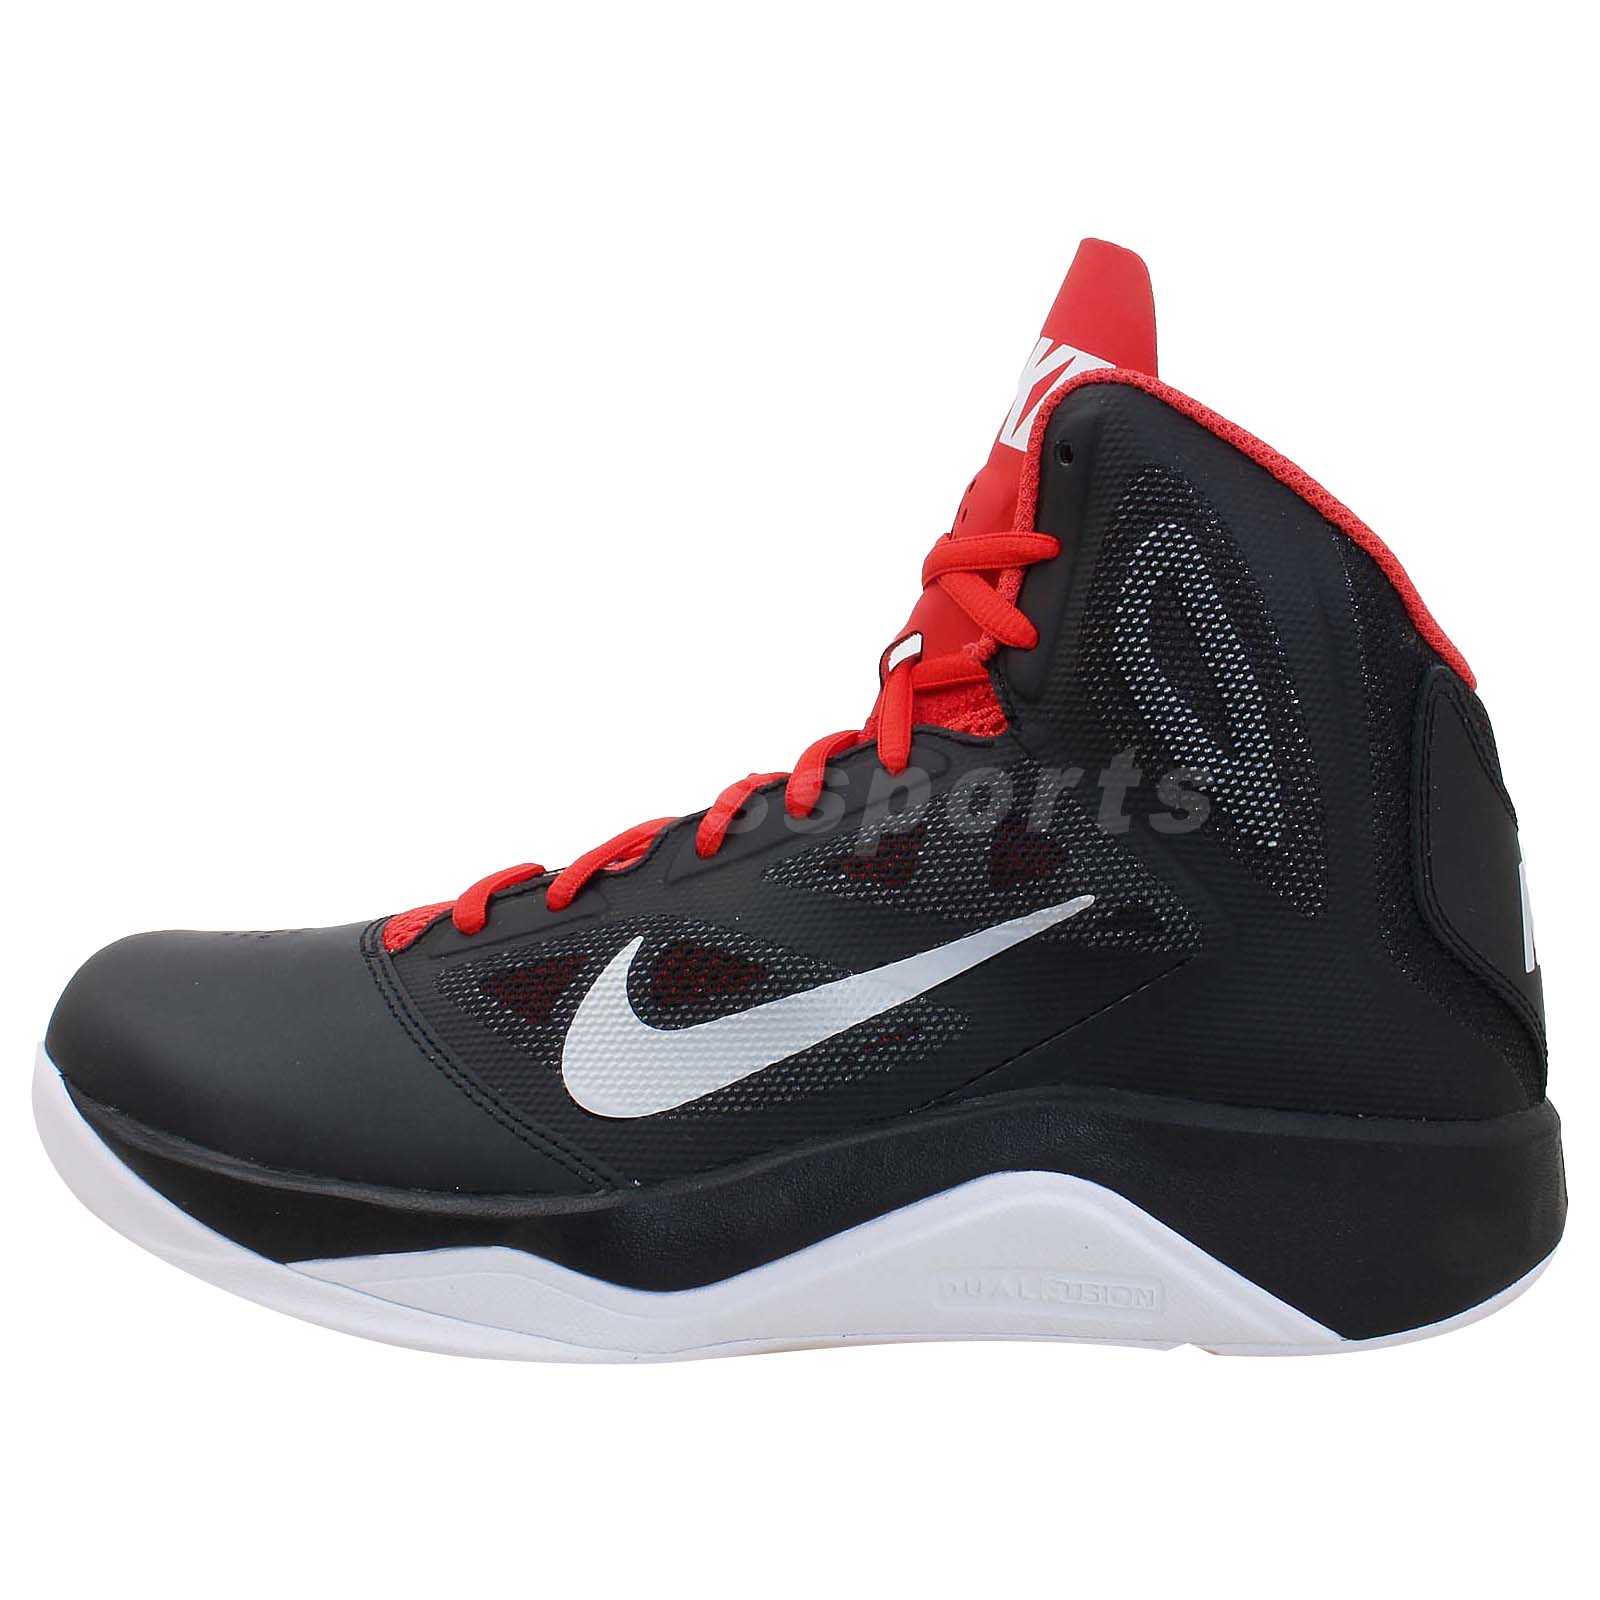 pix for new nike basketball shoes 2014 fashions feel